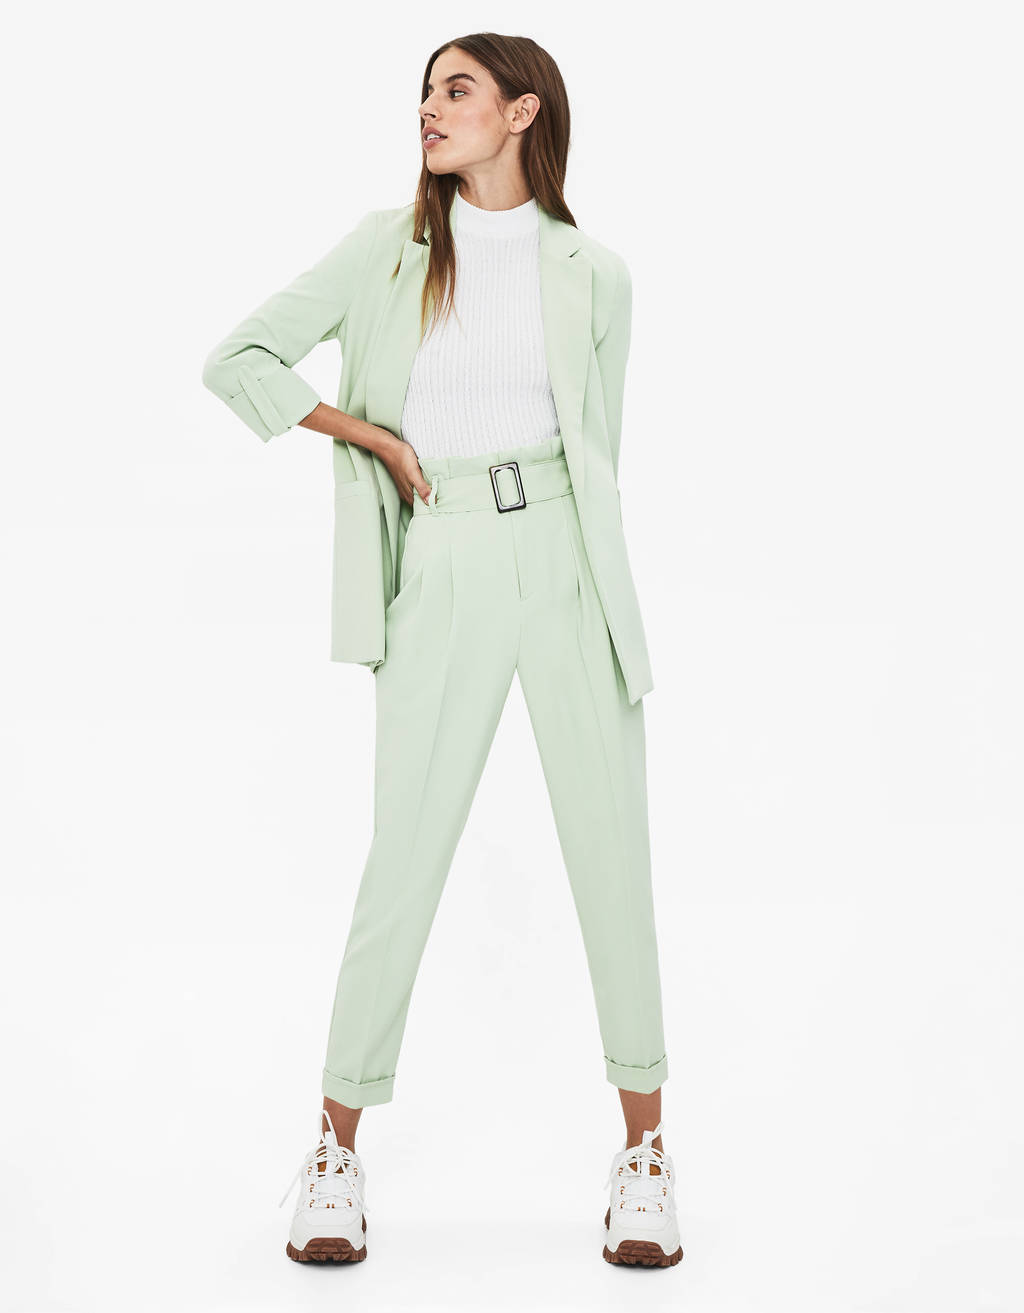 cdf39d18 Women's Trousers - Spring Summer 2019 | Bershka